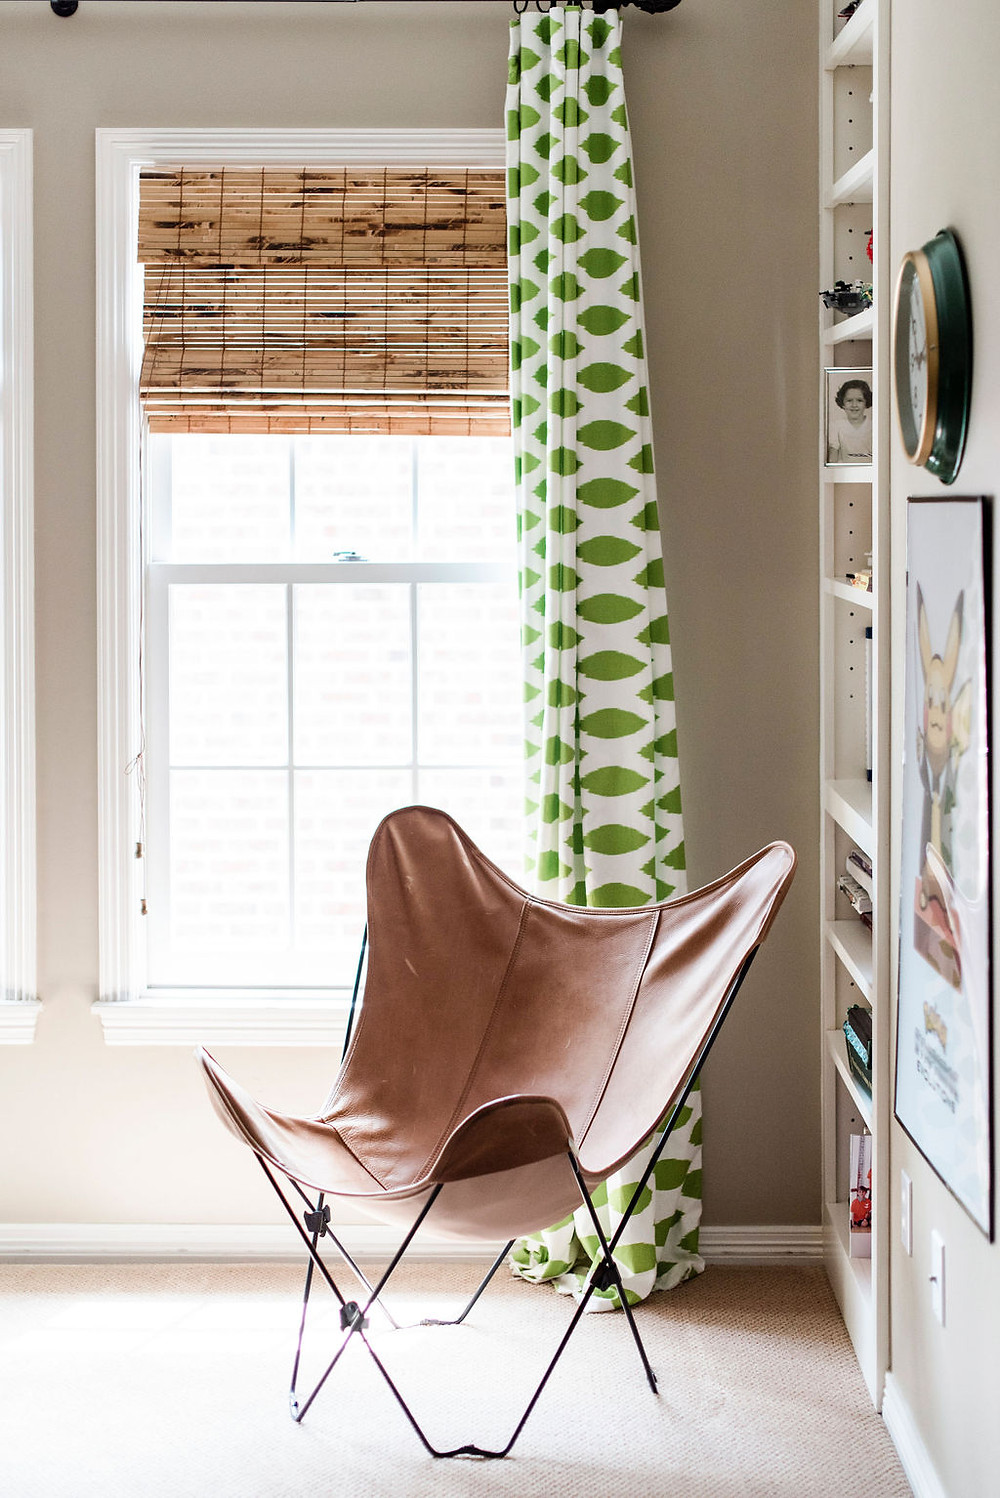 Tween bedroom project in West University, Texas  by Houston interior design firm Nancy Lane Interiors featuring warm greige paint as a backdrop with fun colorful curtains and a leather butterfly lounge chair.